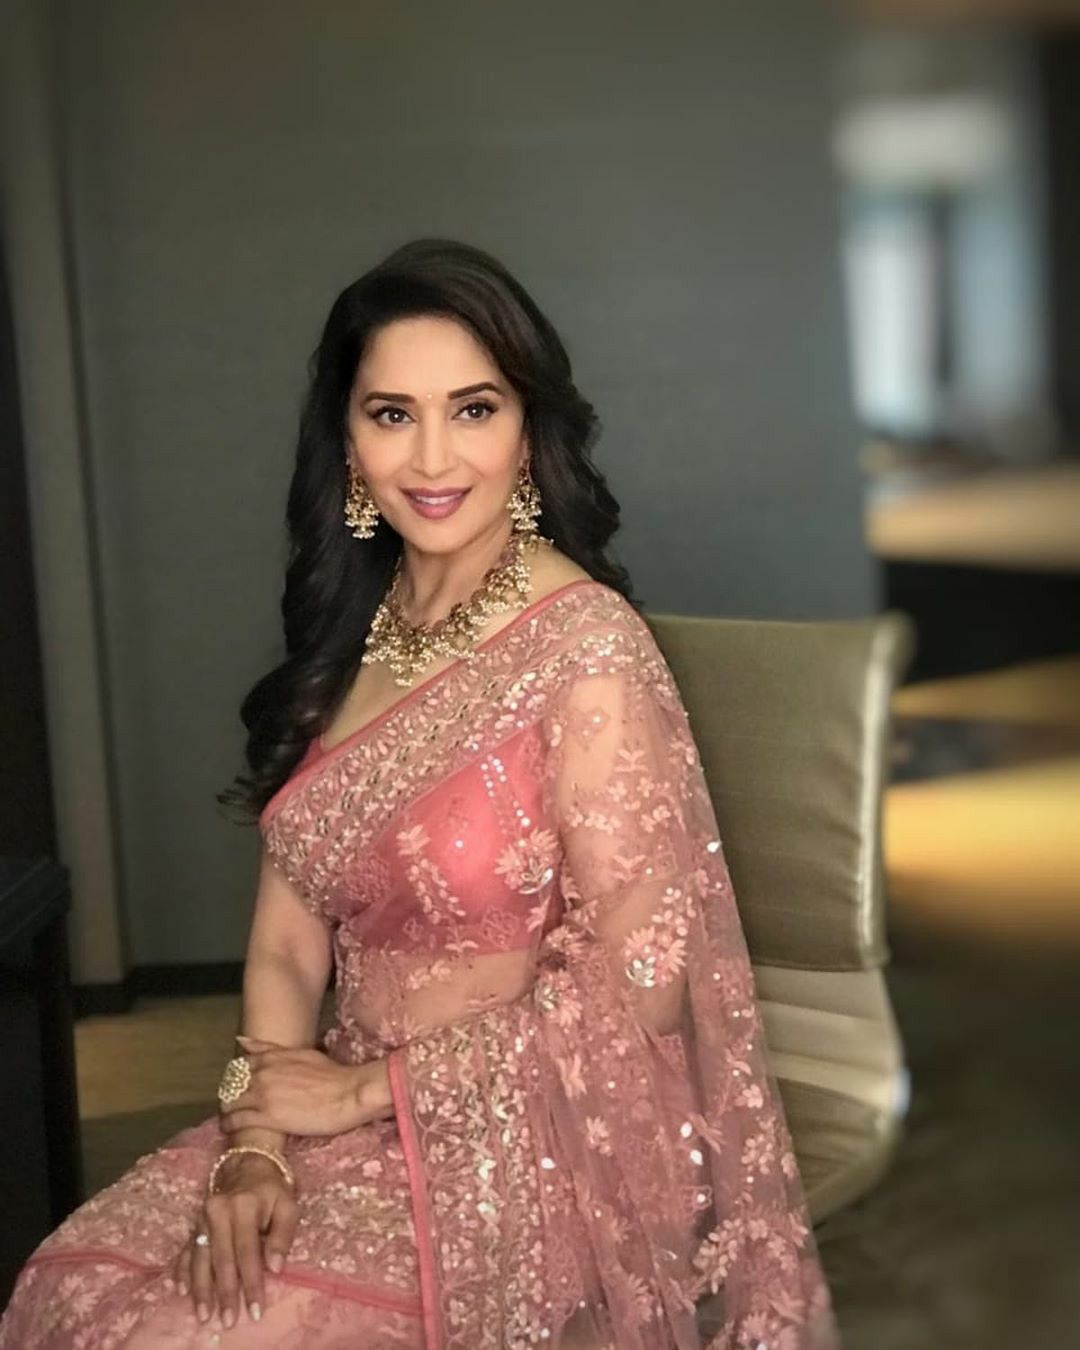 120 Madhuri Dixit Latest Pics, Full Hd Images And Photo -8150